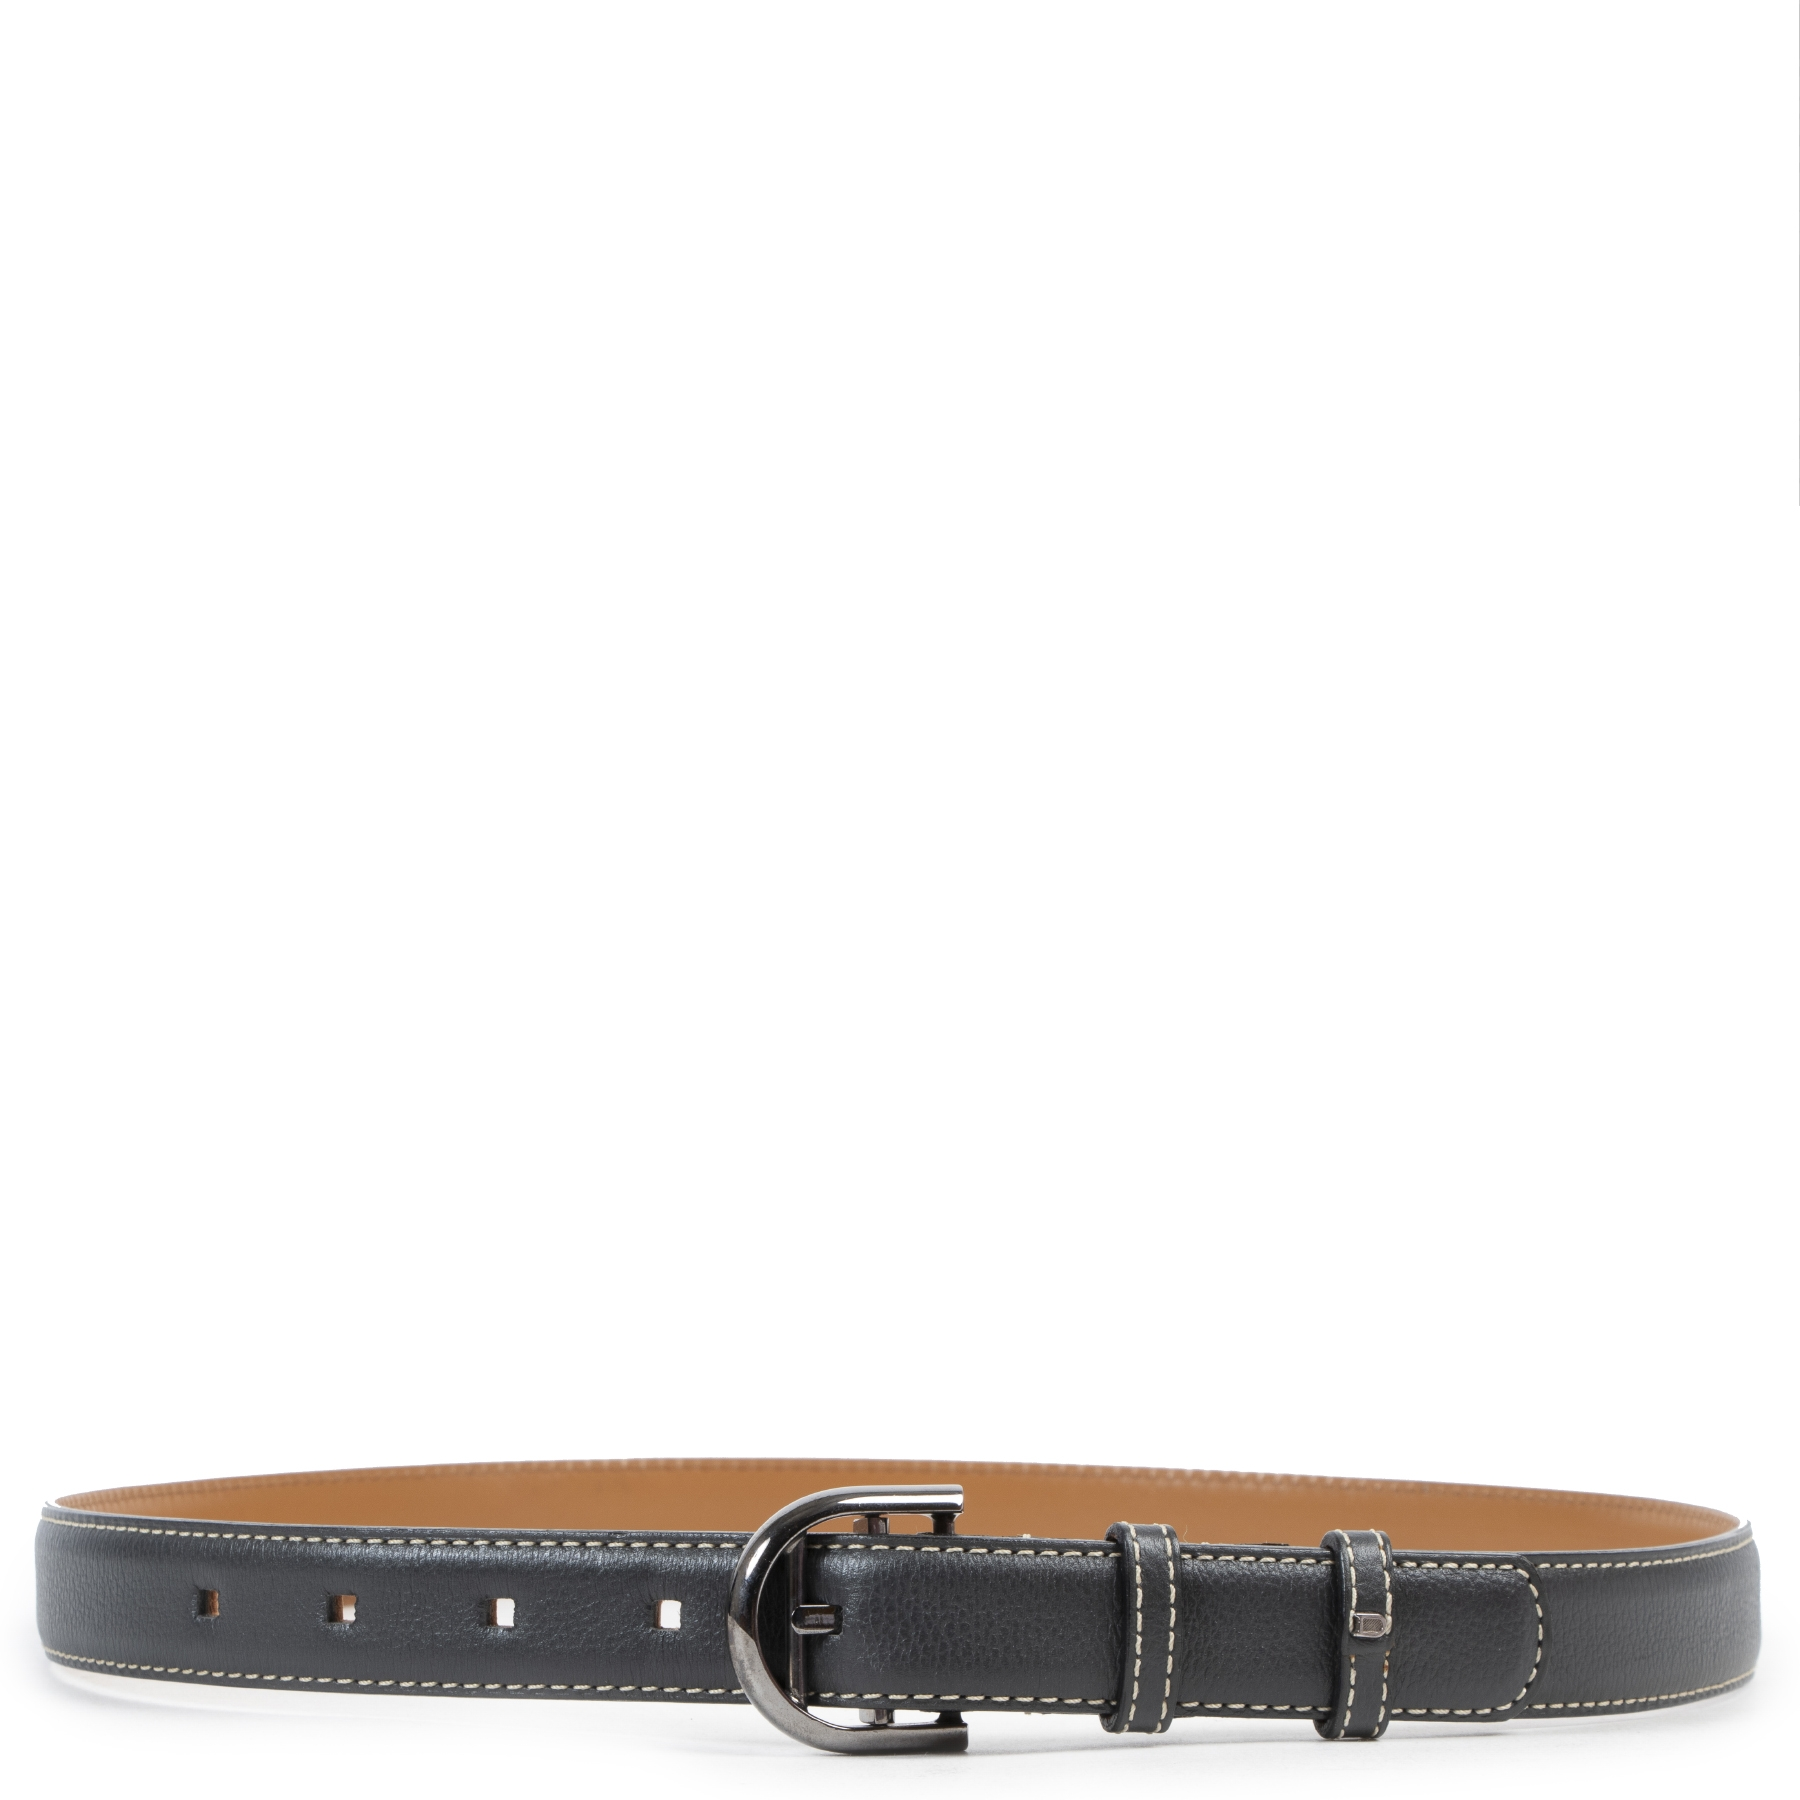 Delvaux Anthracite Grey Leather Belt - size 85